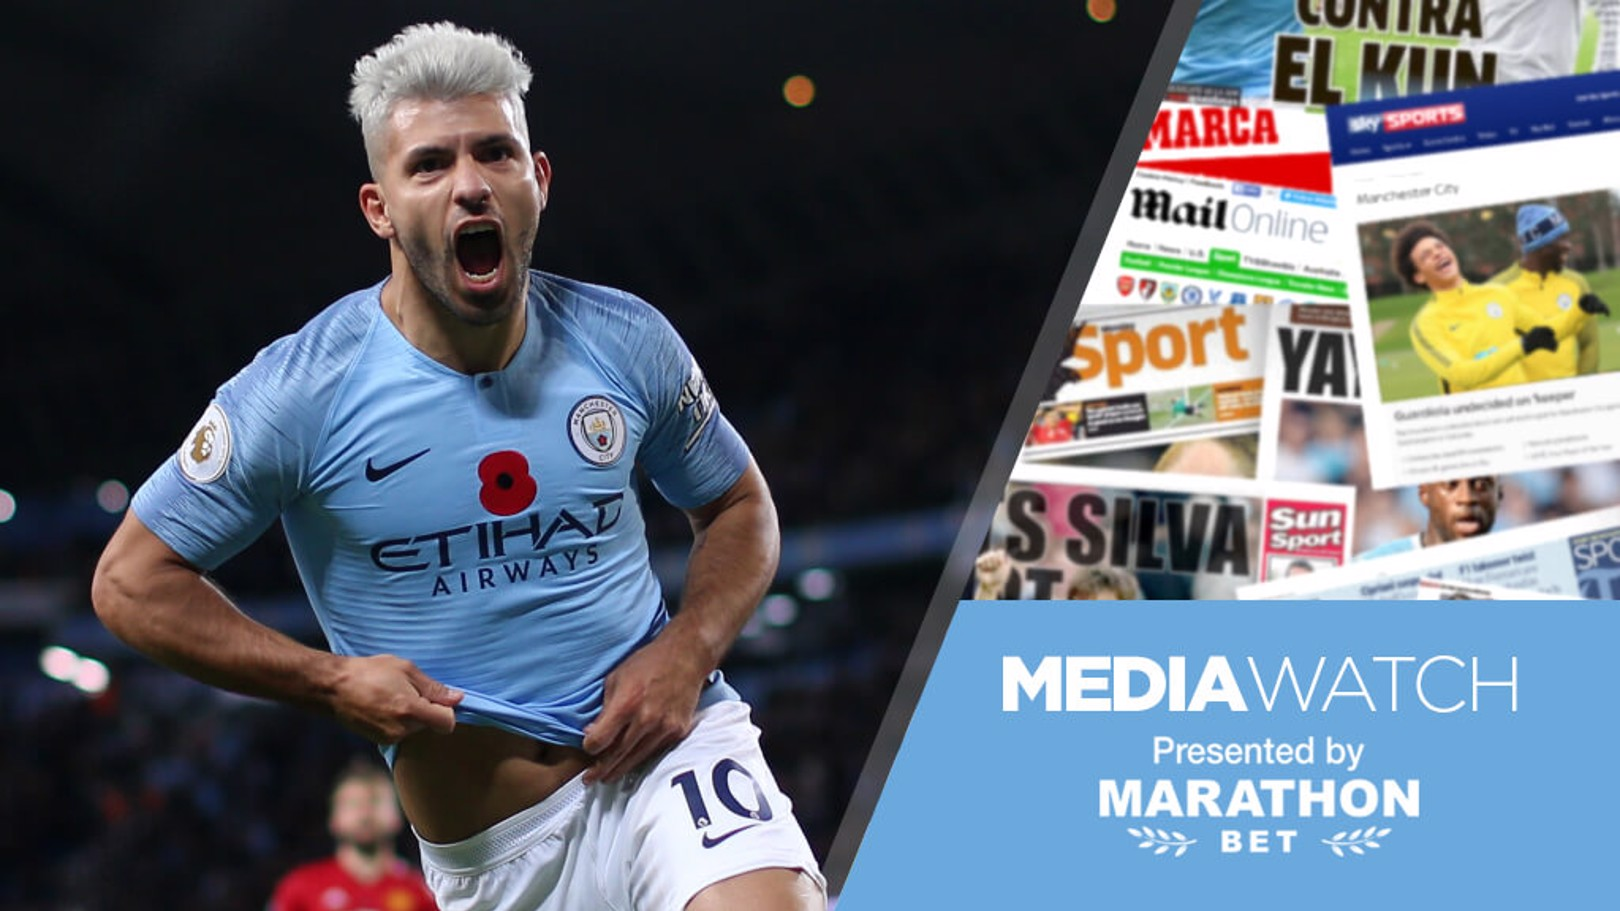 DERBY DELIGHT?: The press are confident of City's chances at Old Trafford...